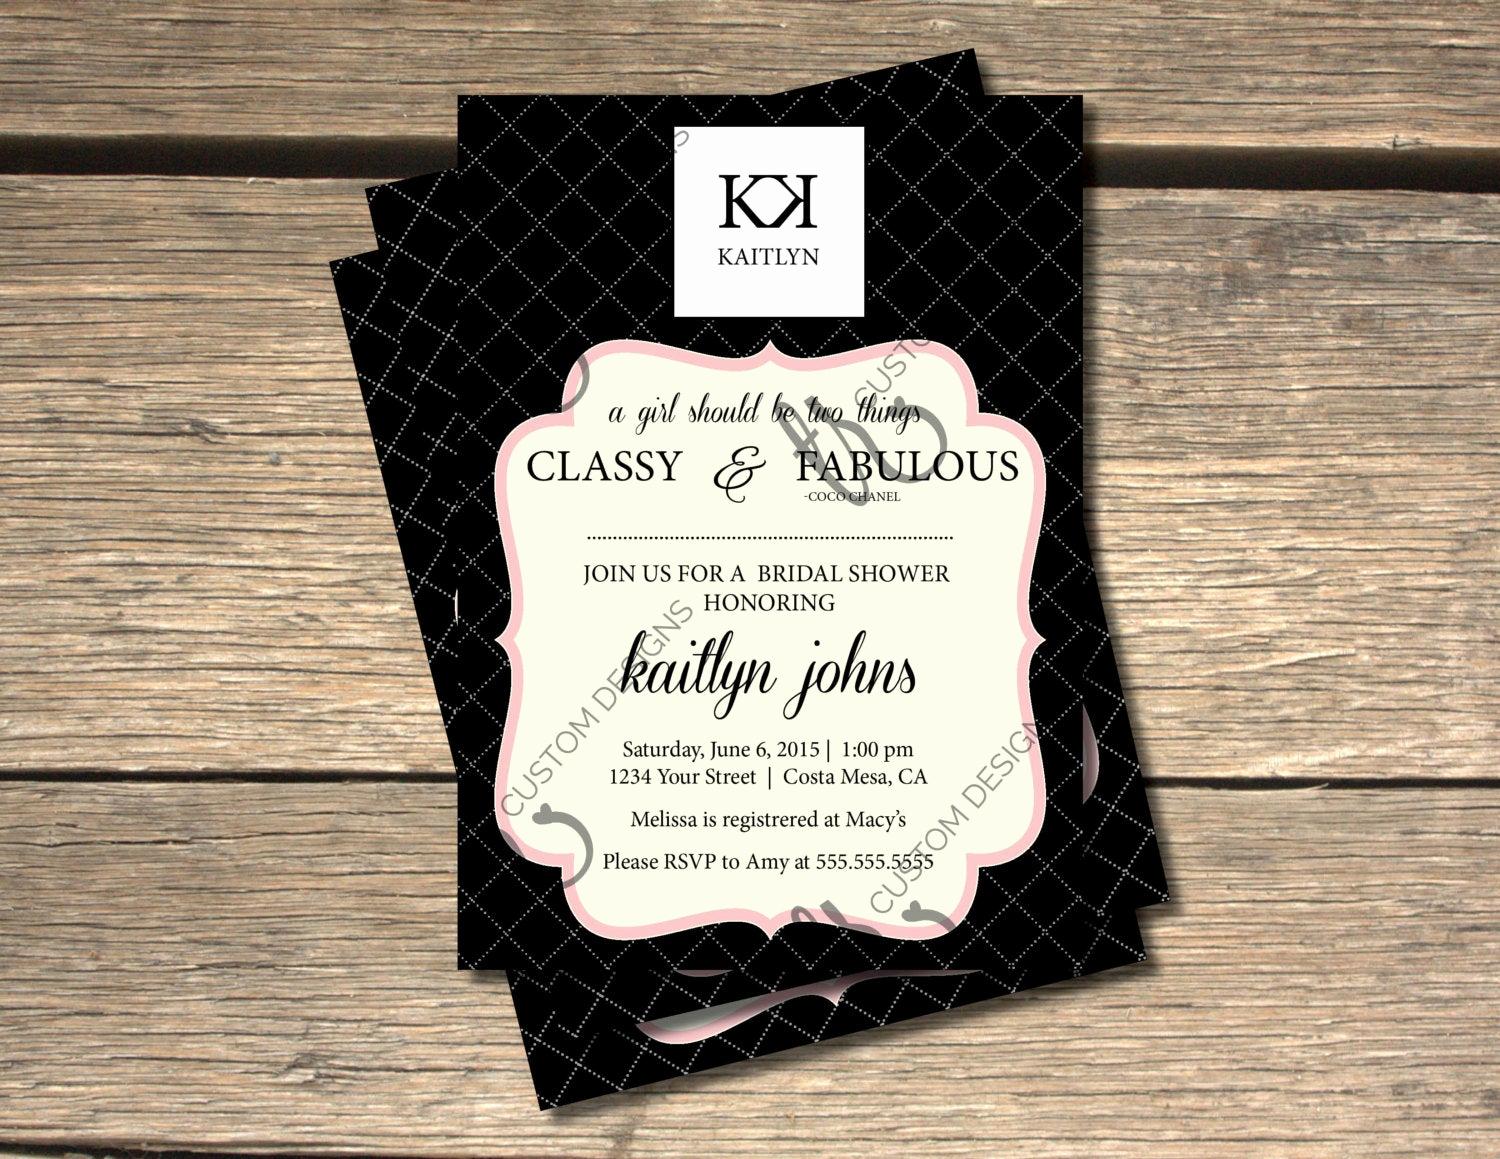 Chanel Bridal Shower Invitation Awesome Coco Chanel Inspired Bridal Shower Invitation 5x7